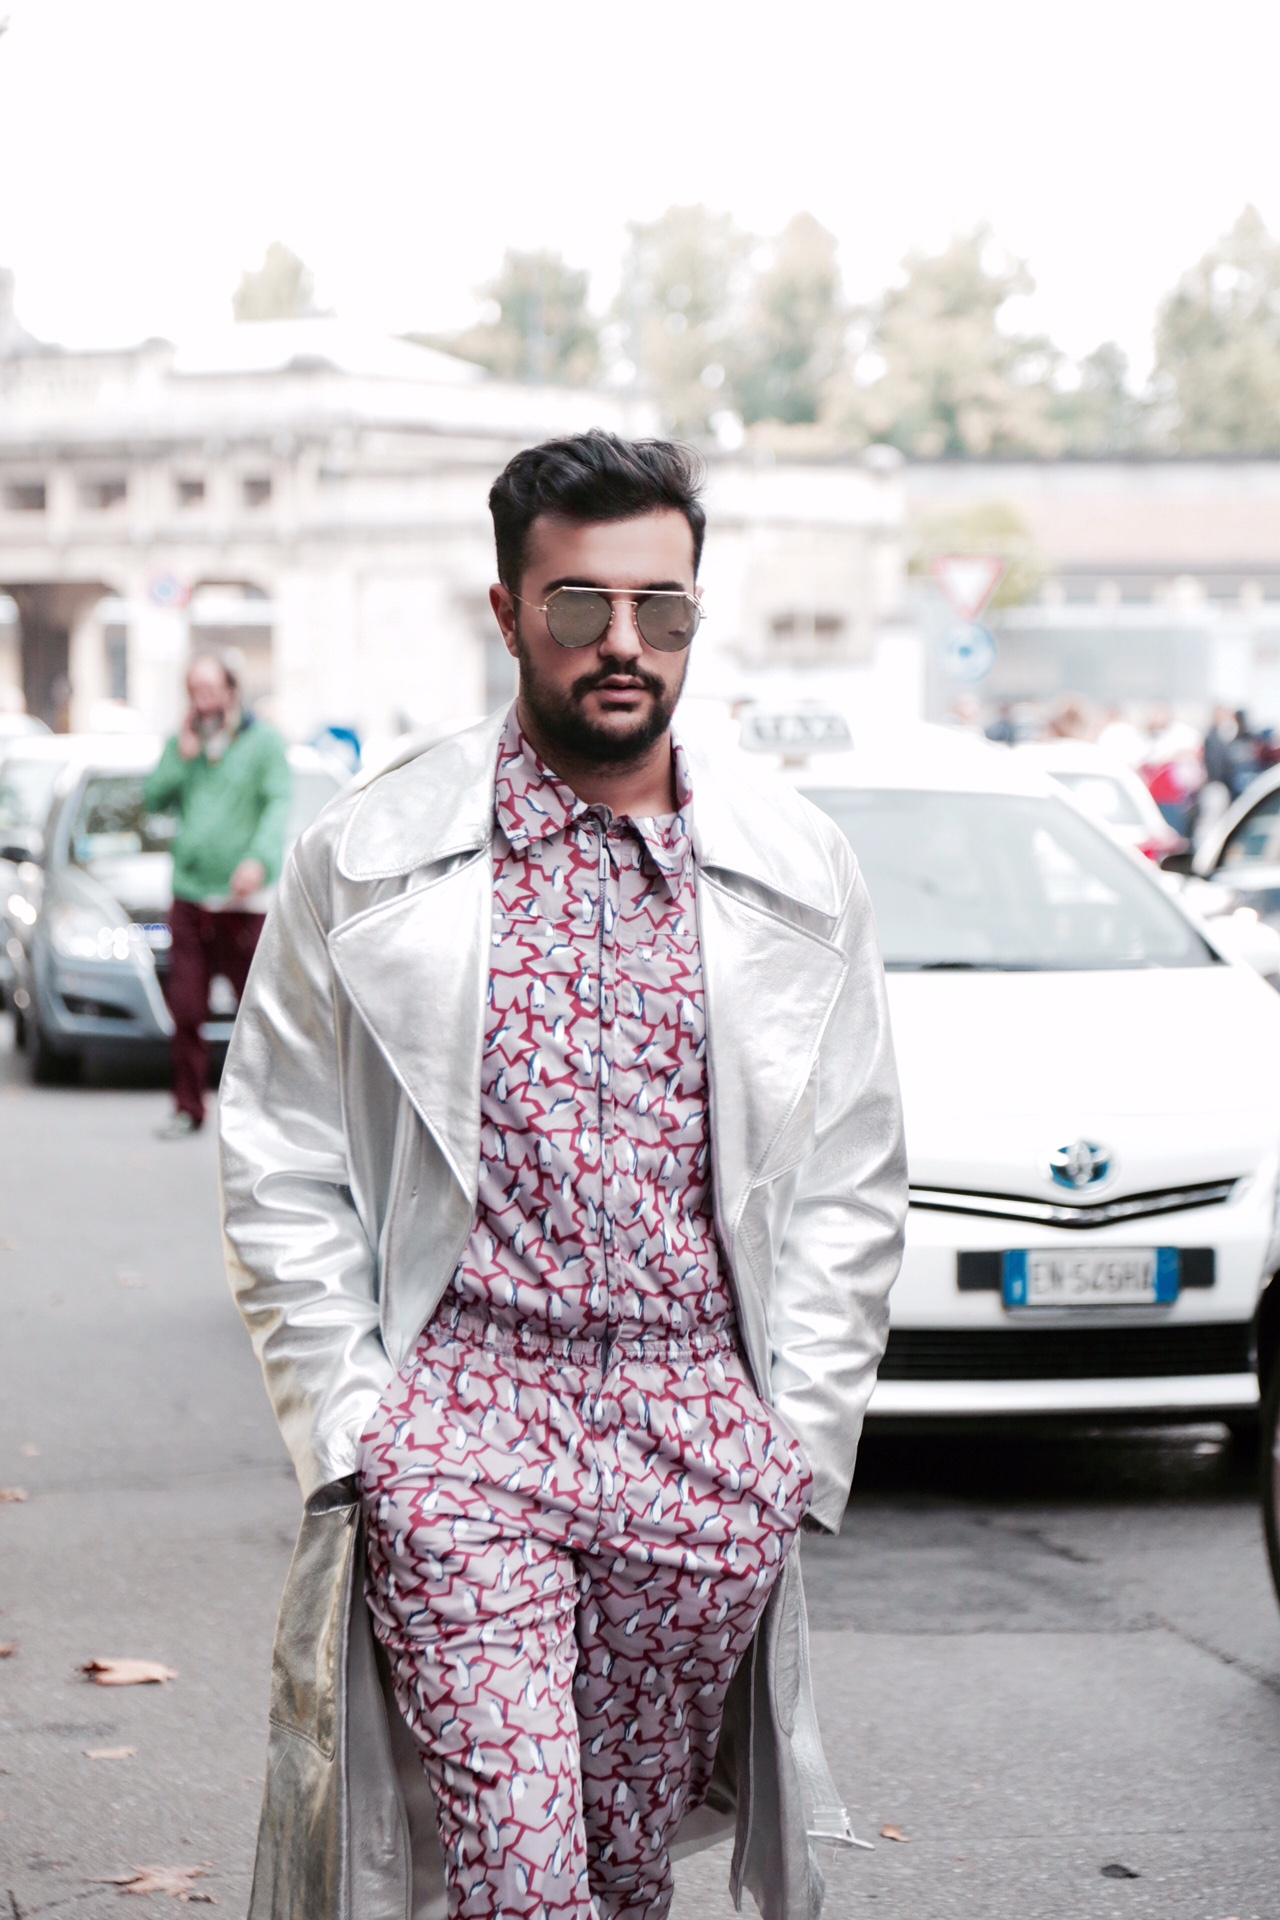 milano-fashion-week-ss2017-street-style-kubilay-sakarya-3